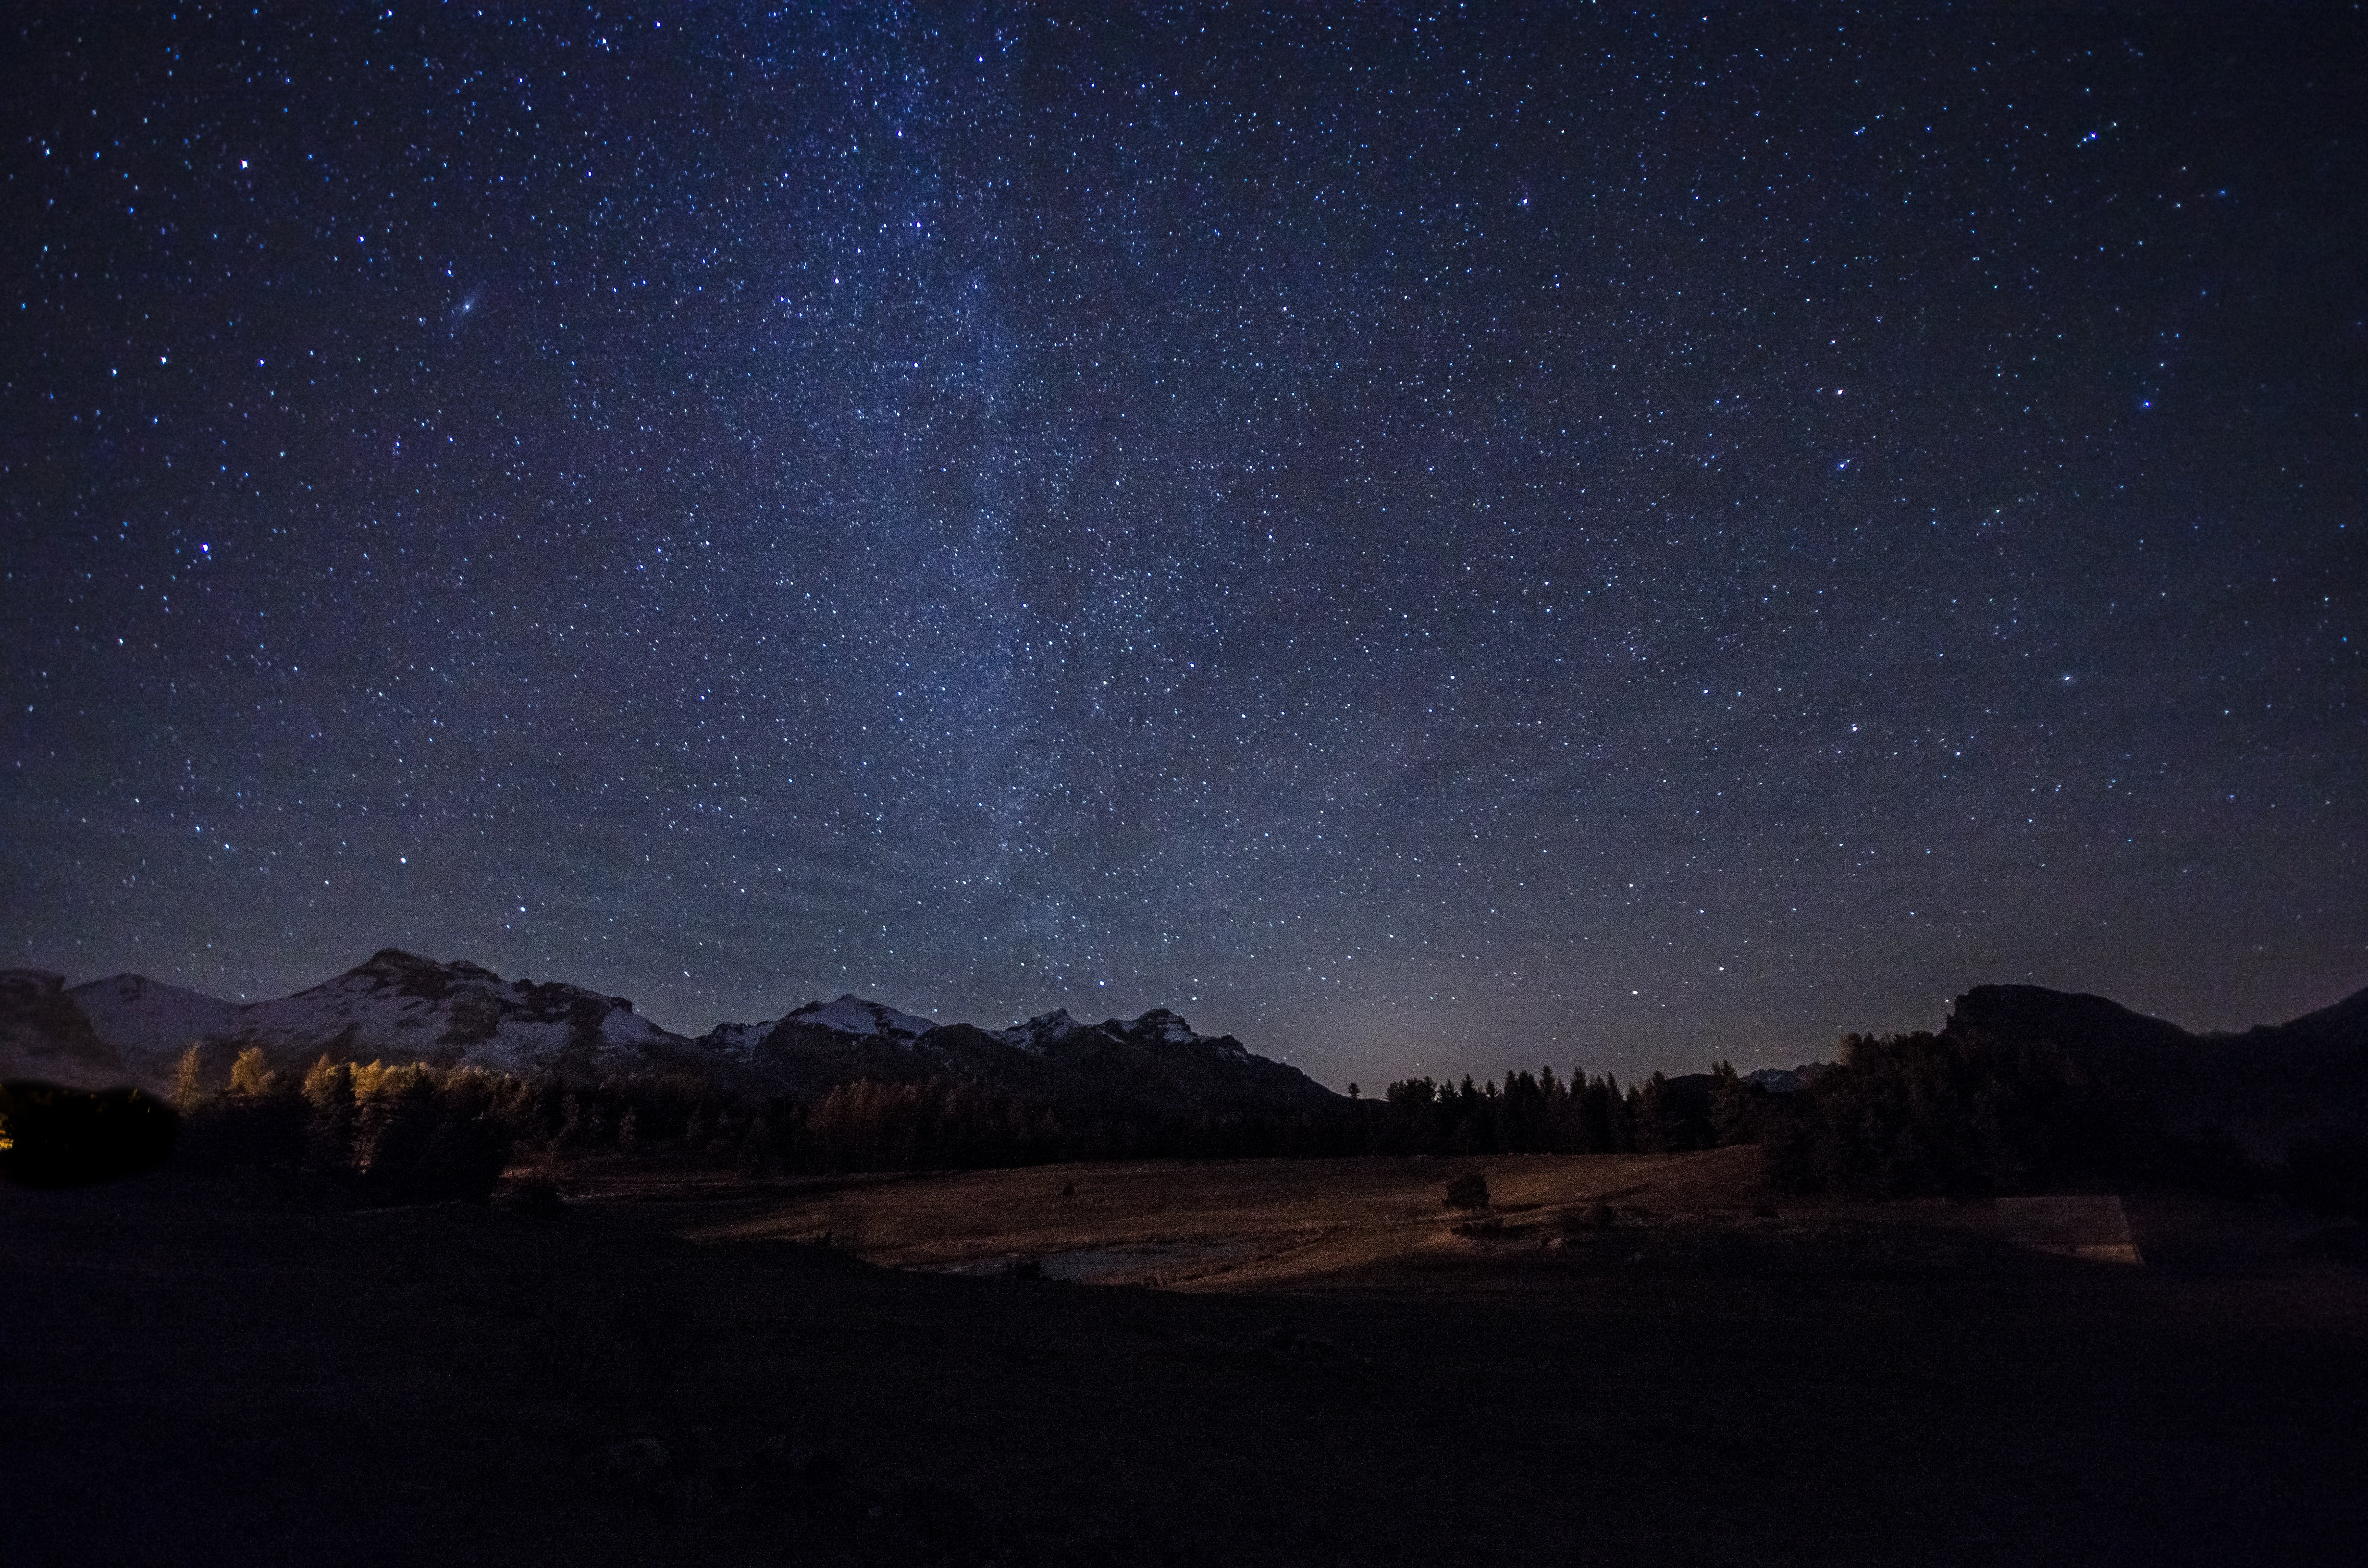 Starry sky over mountains and woods